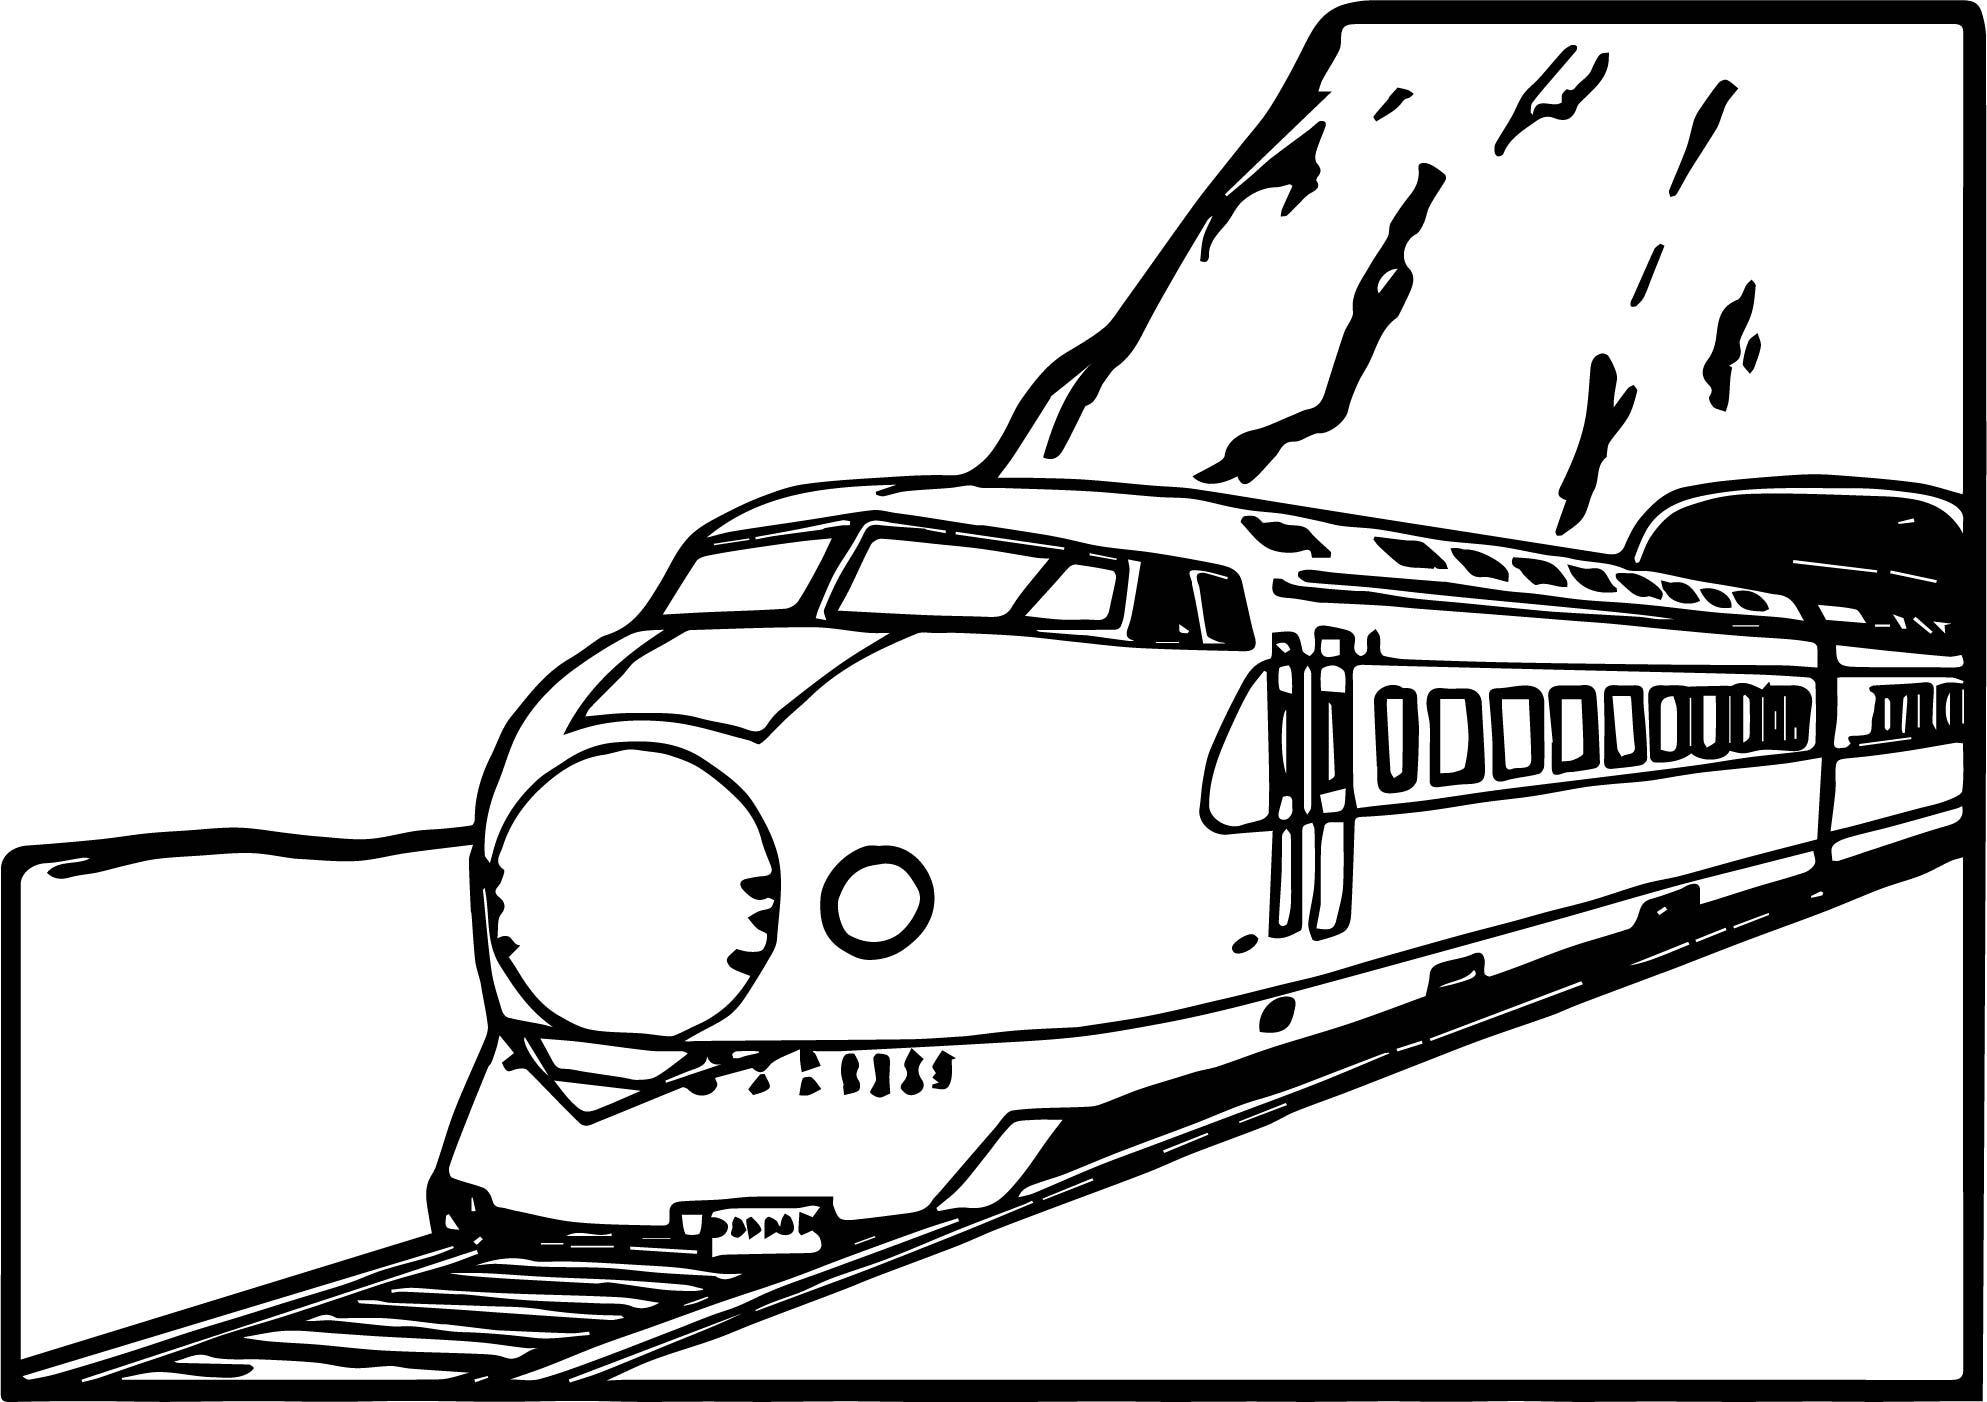 train mountain coloring page - Mountain Coloring Page